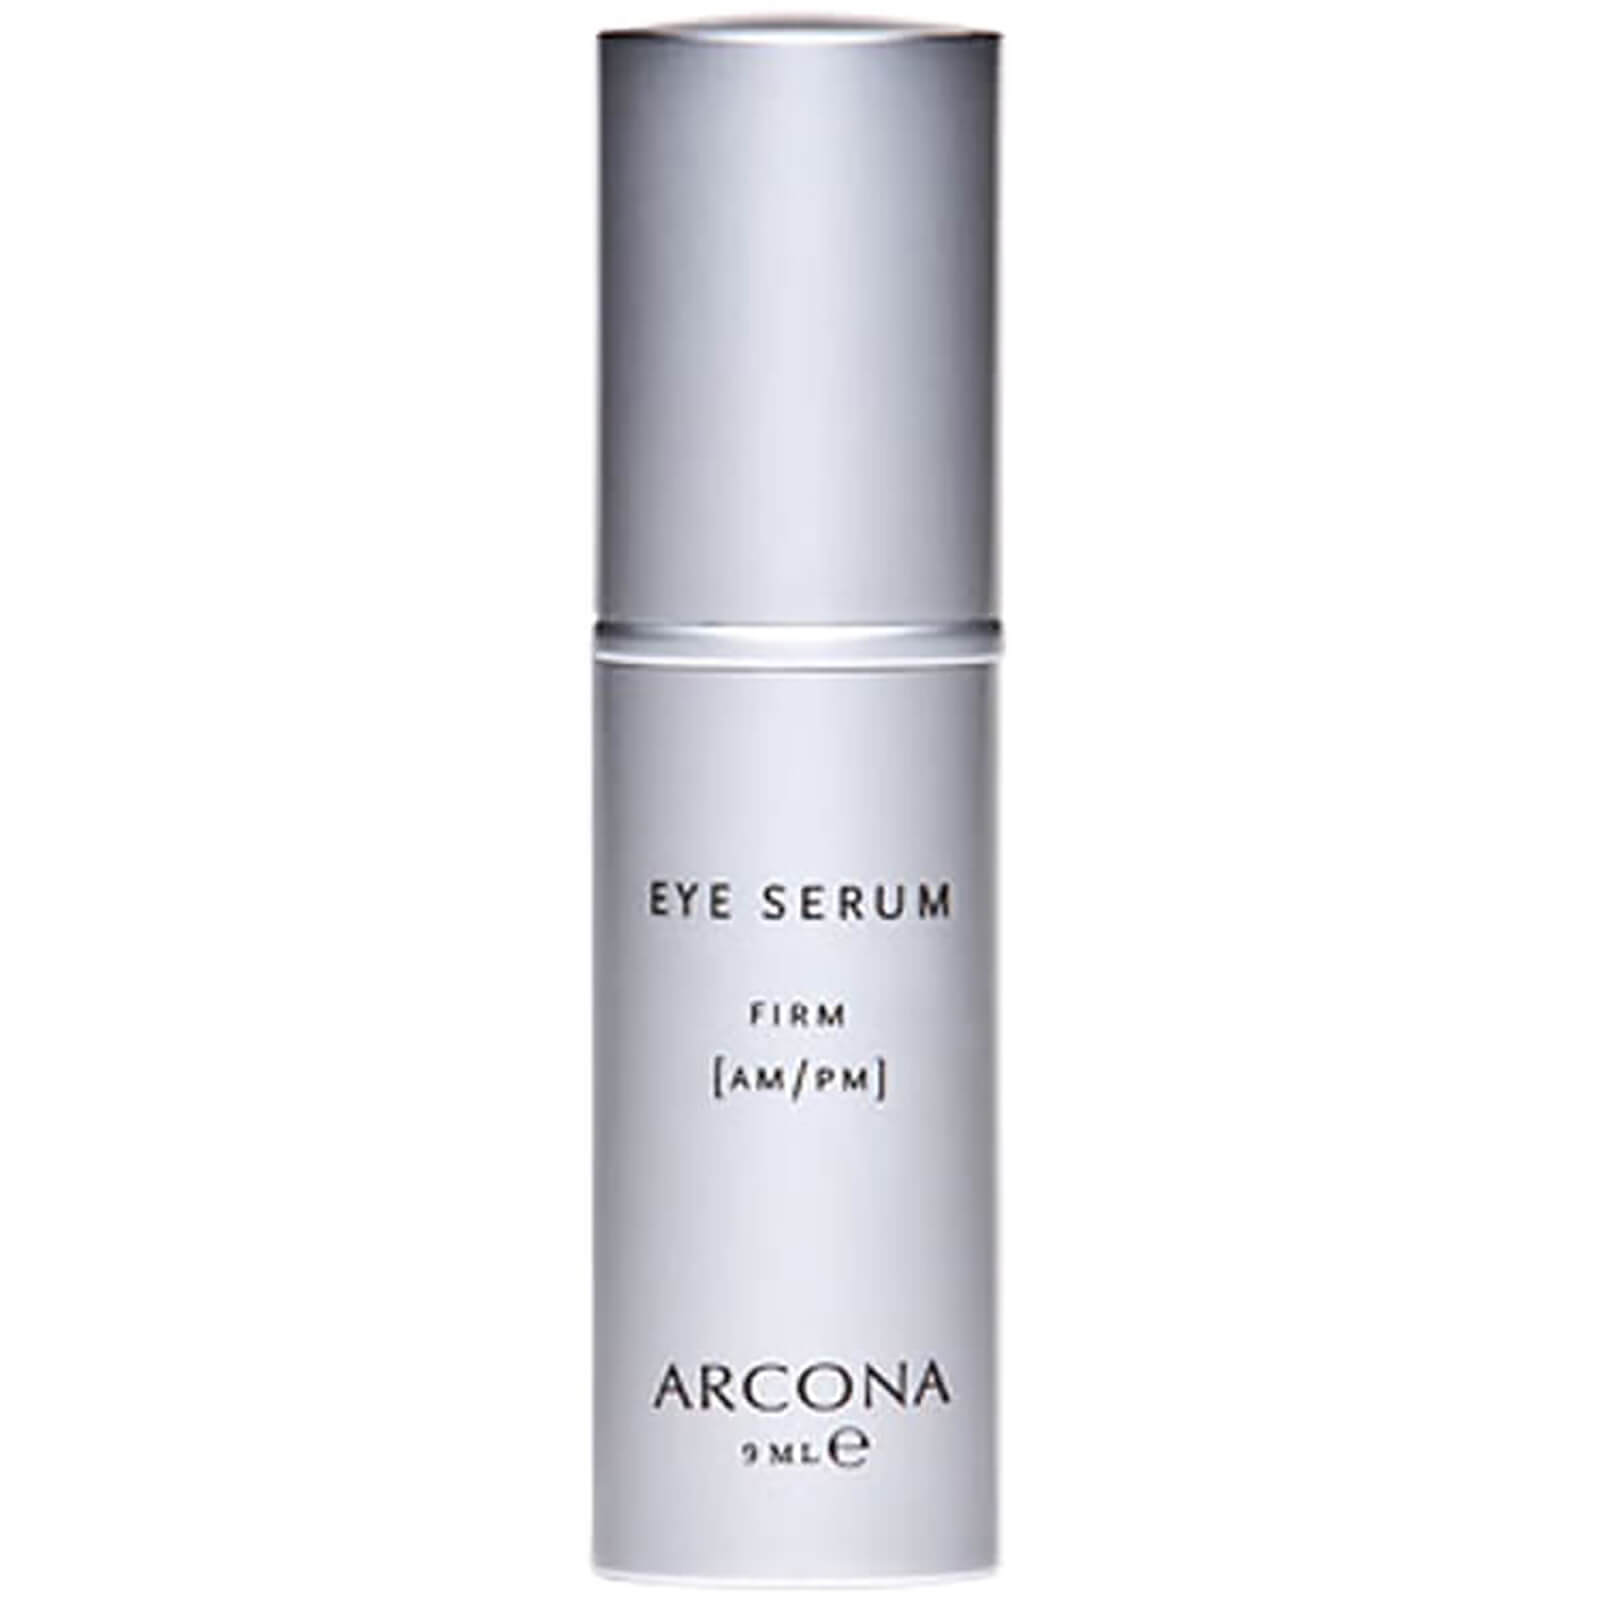 ARCONA Eye Serum 0.3oz